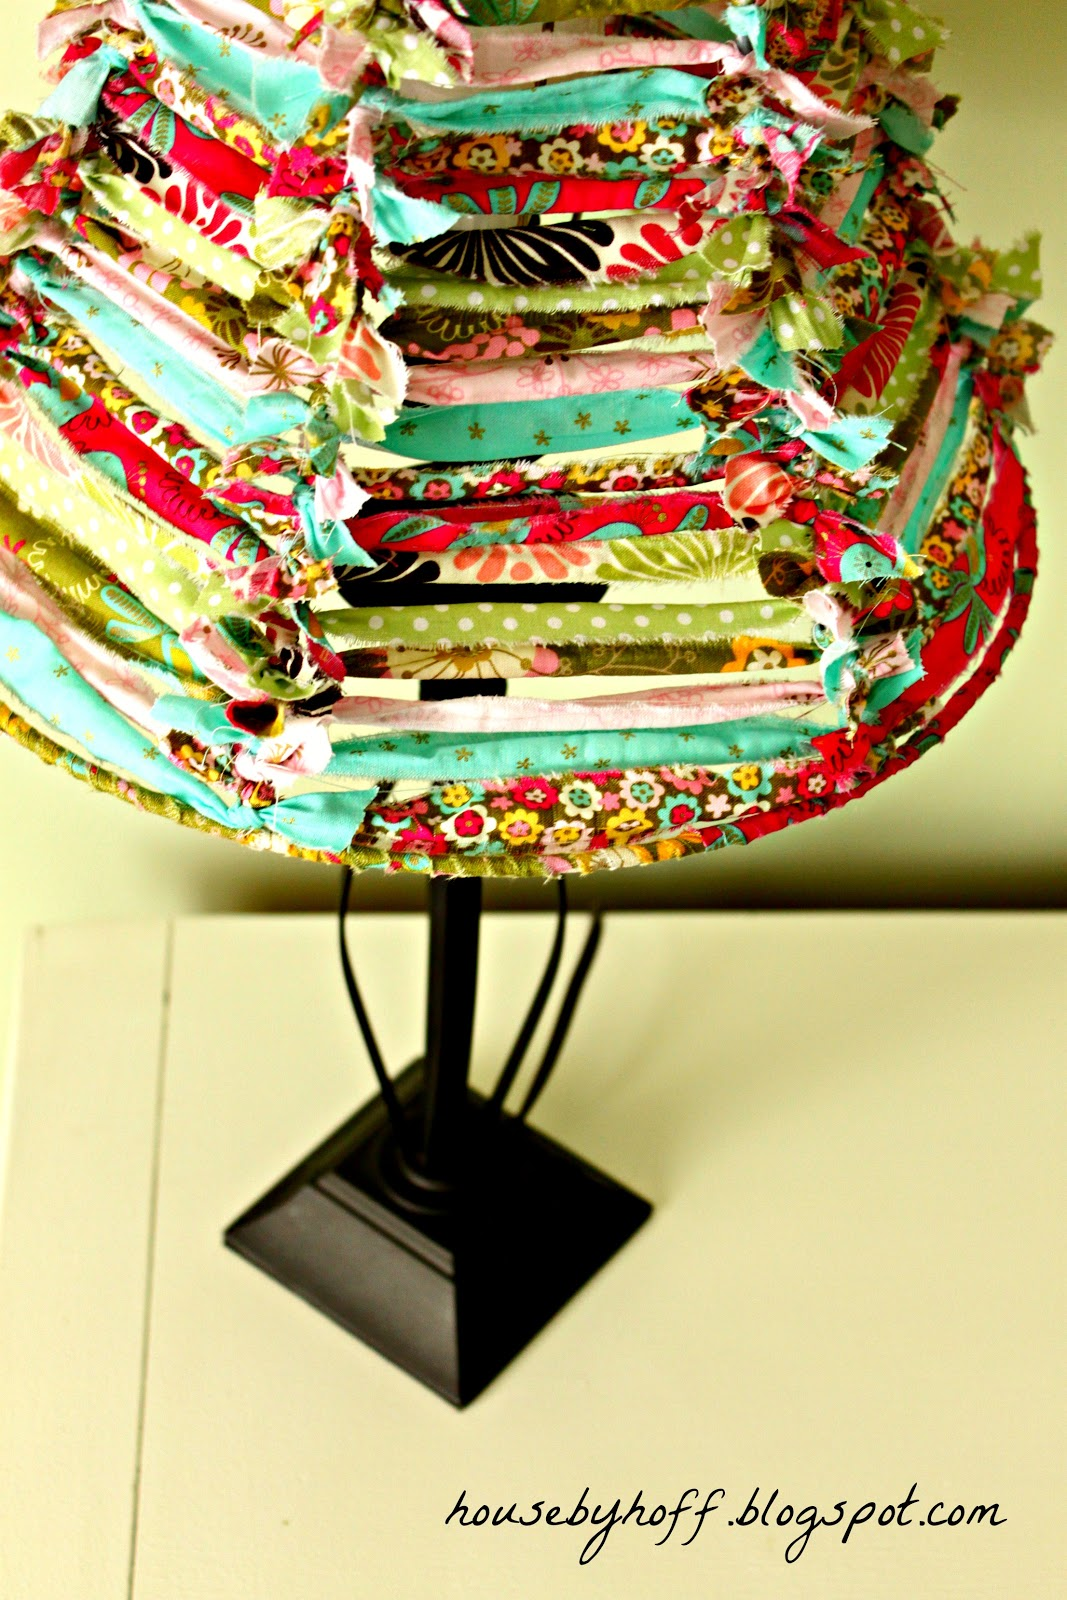 A Fabric Scrap Lampshade {It's $30 Thursday!} - House by Hoff